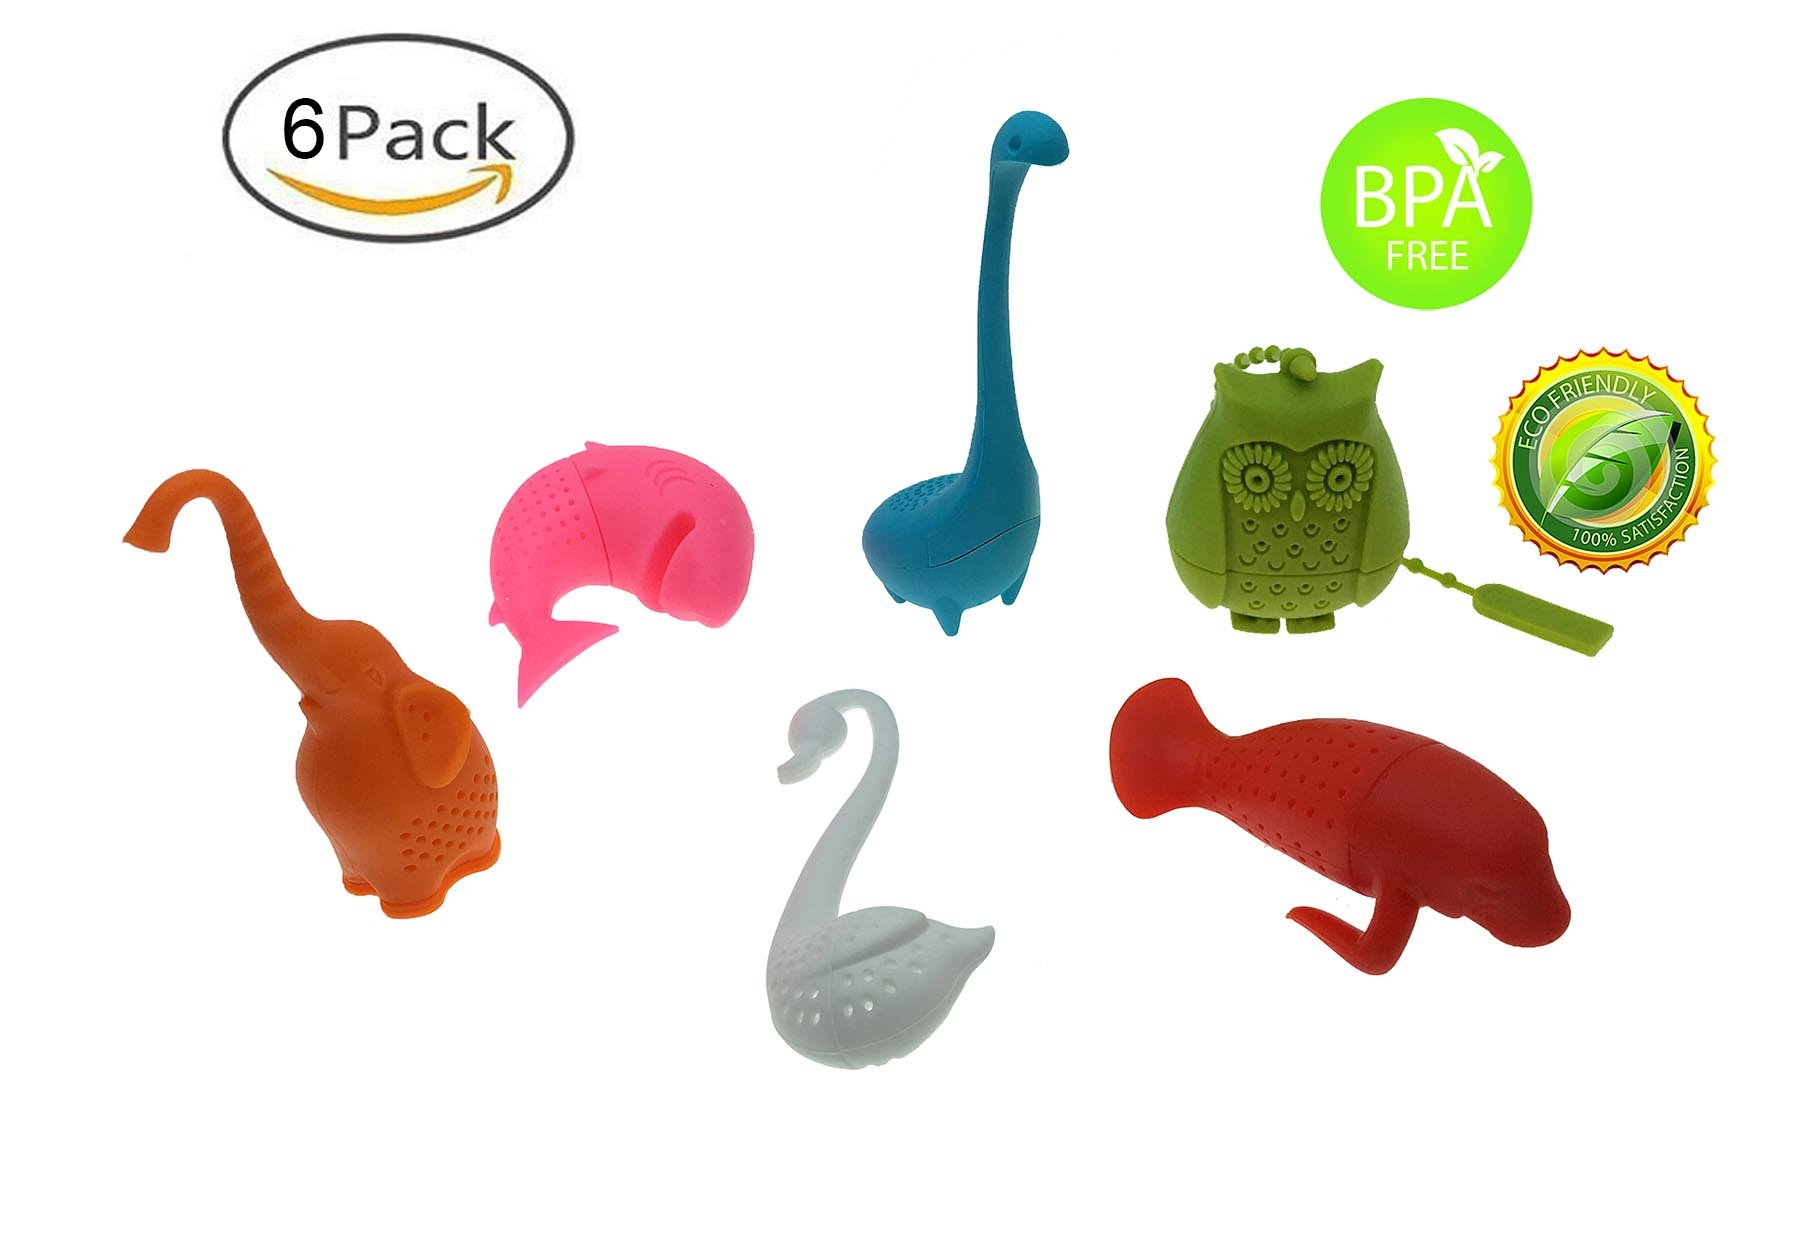 Set of 6 Cute Animal Theme Safe And Non-toxic Silicone Tea Infuser Strainer Tea Filters - Cute Gift For Tea Lovers